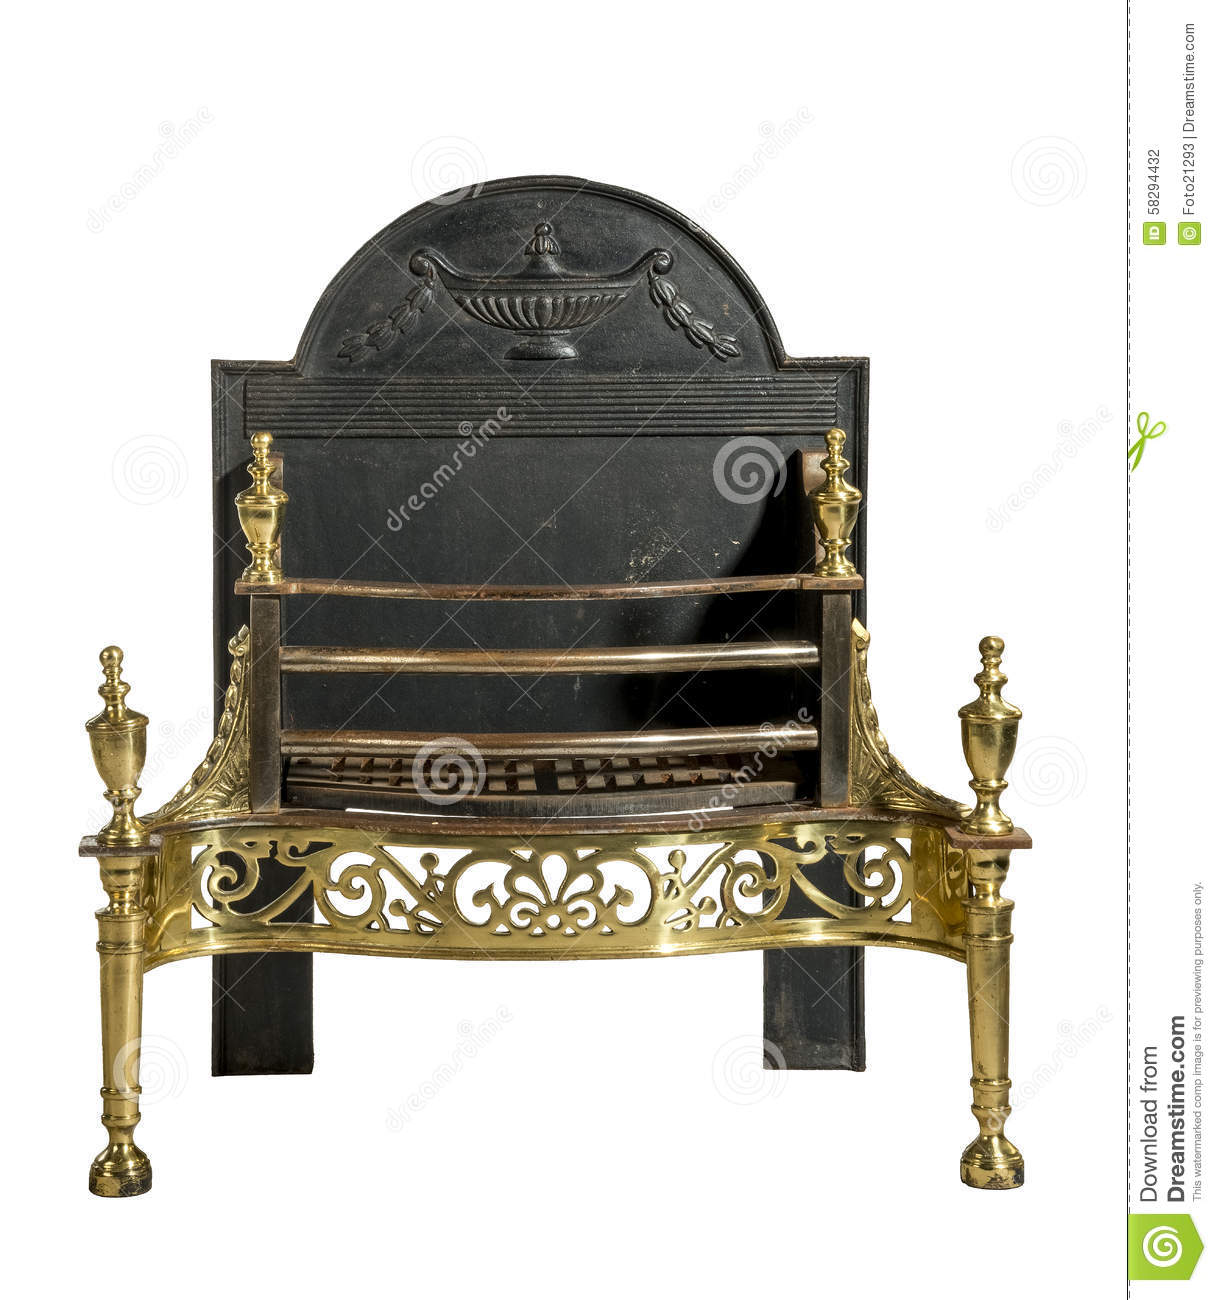 Antique Fireplace Grate Old Antique Stock Photo Image 58294432